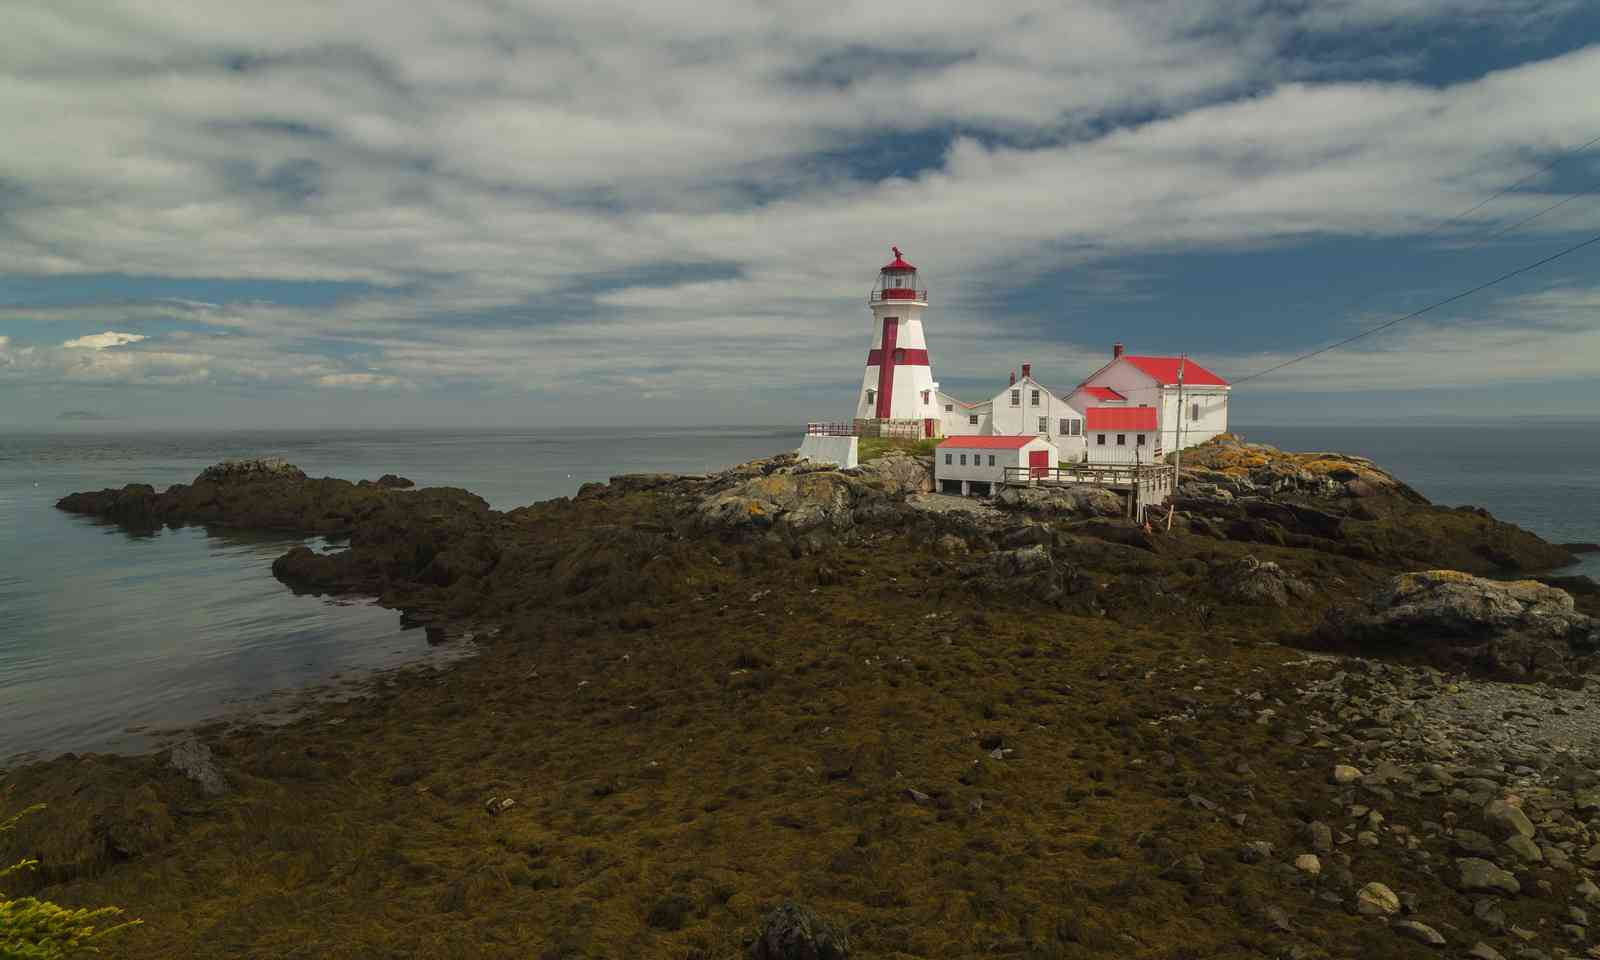 Low tide path to East Quoddy Light (Shutterstock.com)